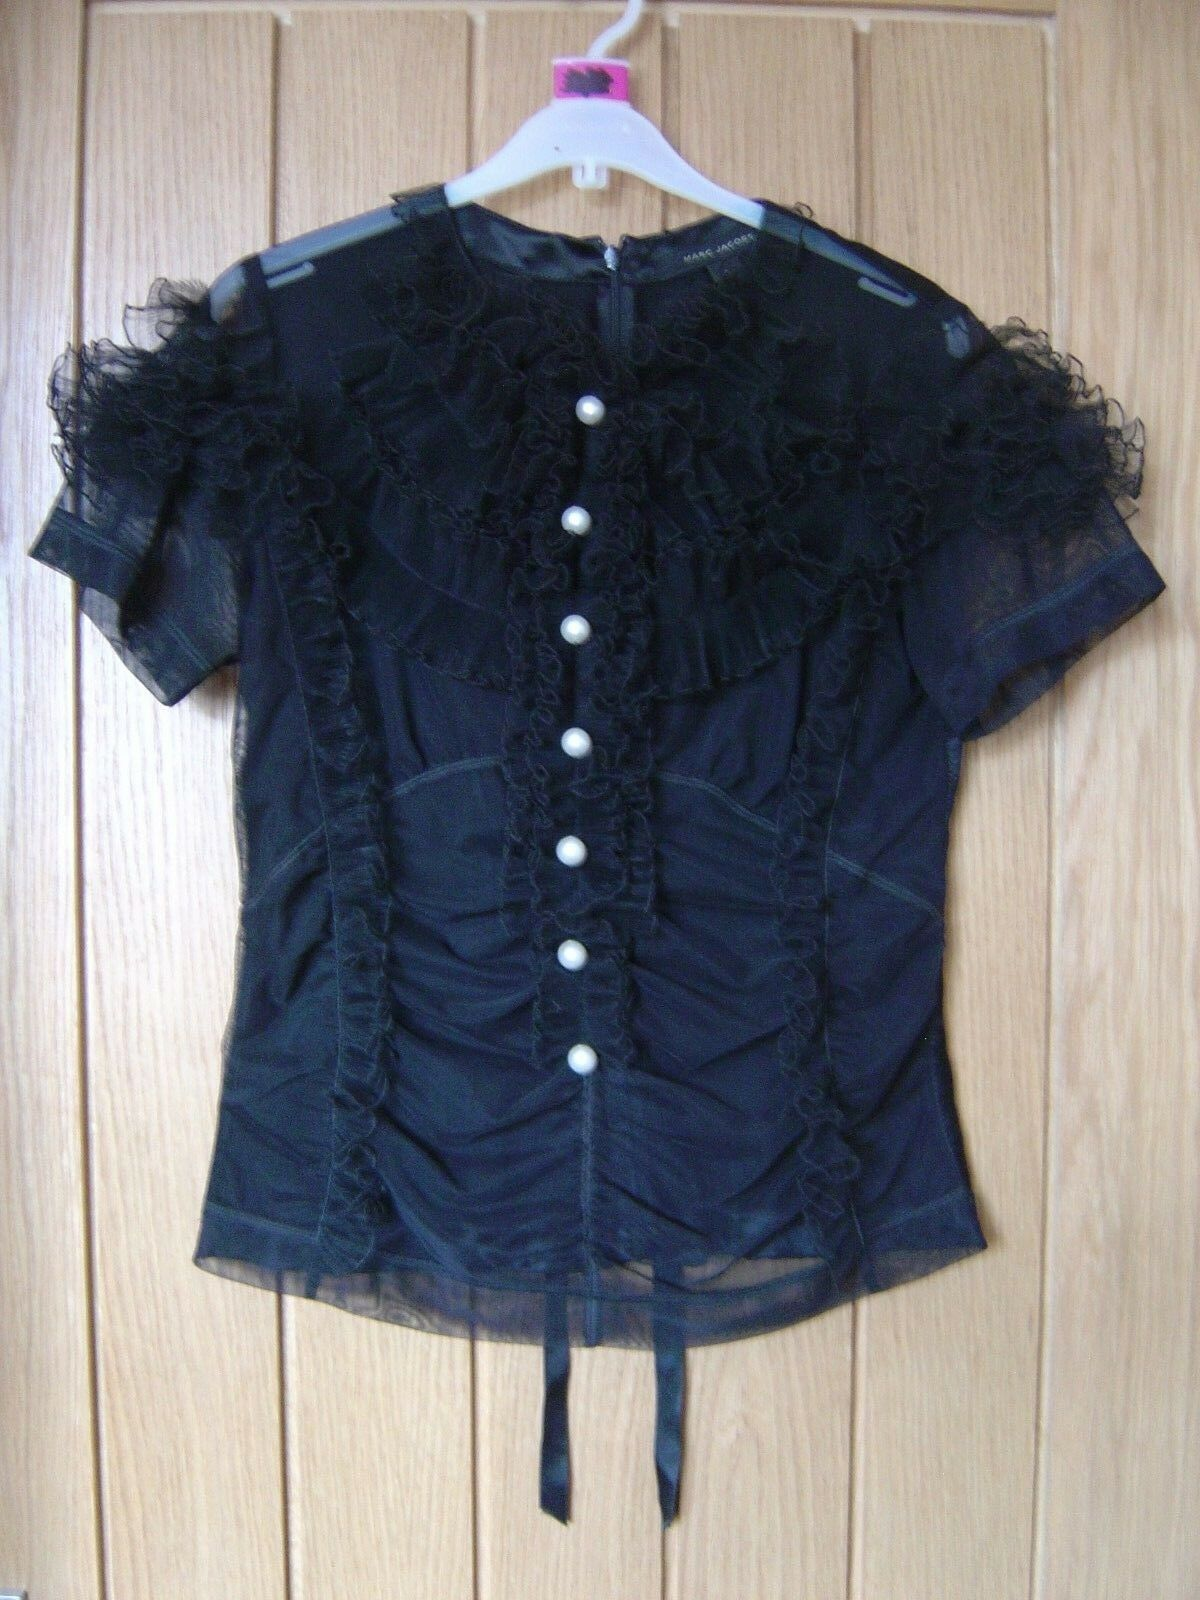 Marc Jacbos schwarz Frill Top Größe US 4 (Ref M) Excellent Condition